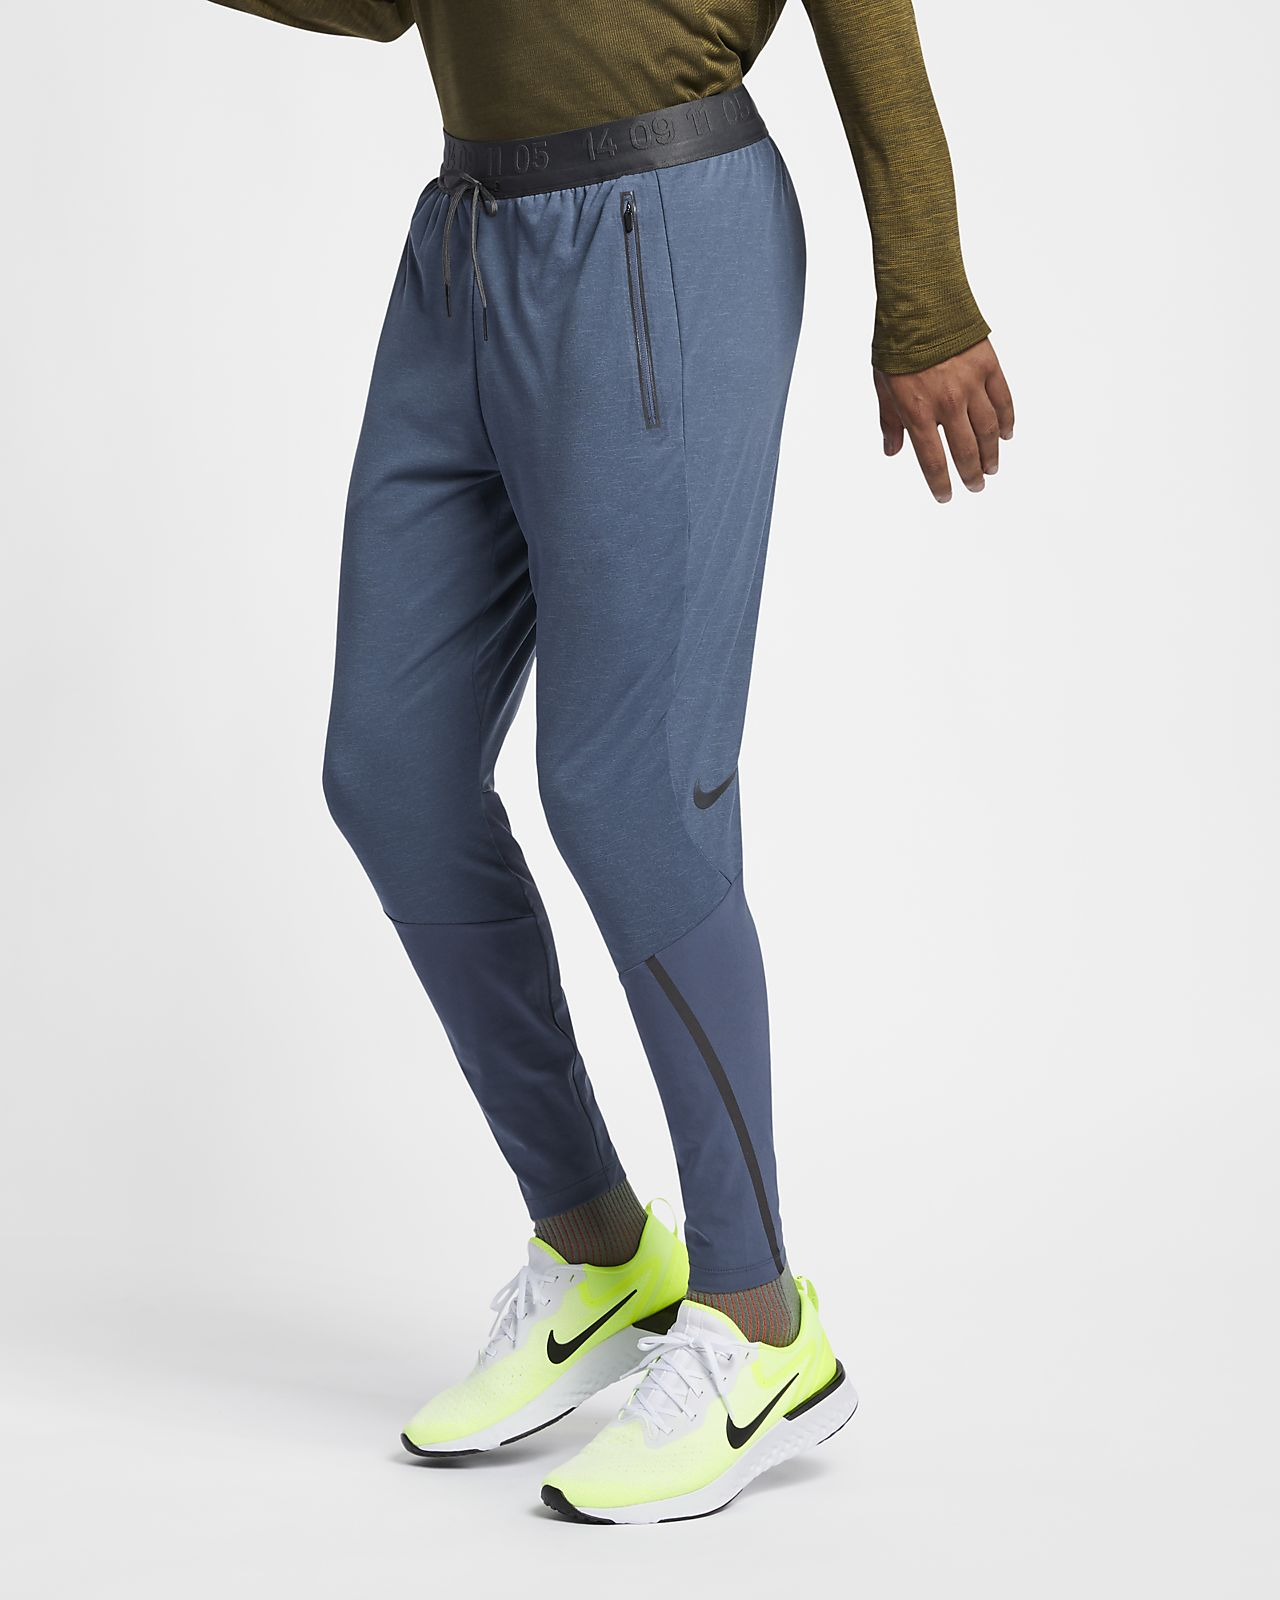 f65997b2253b Nike Therma Sphere Tech Pack Men s Running Pants. Nike.com